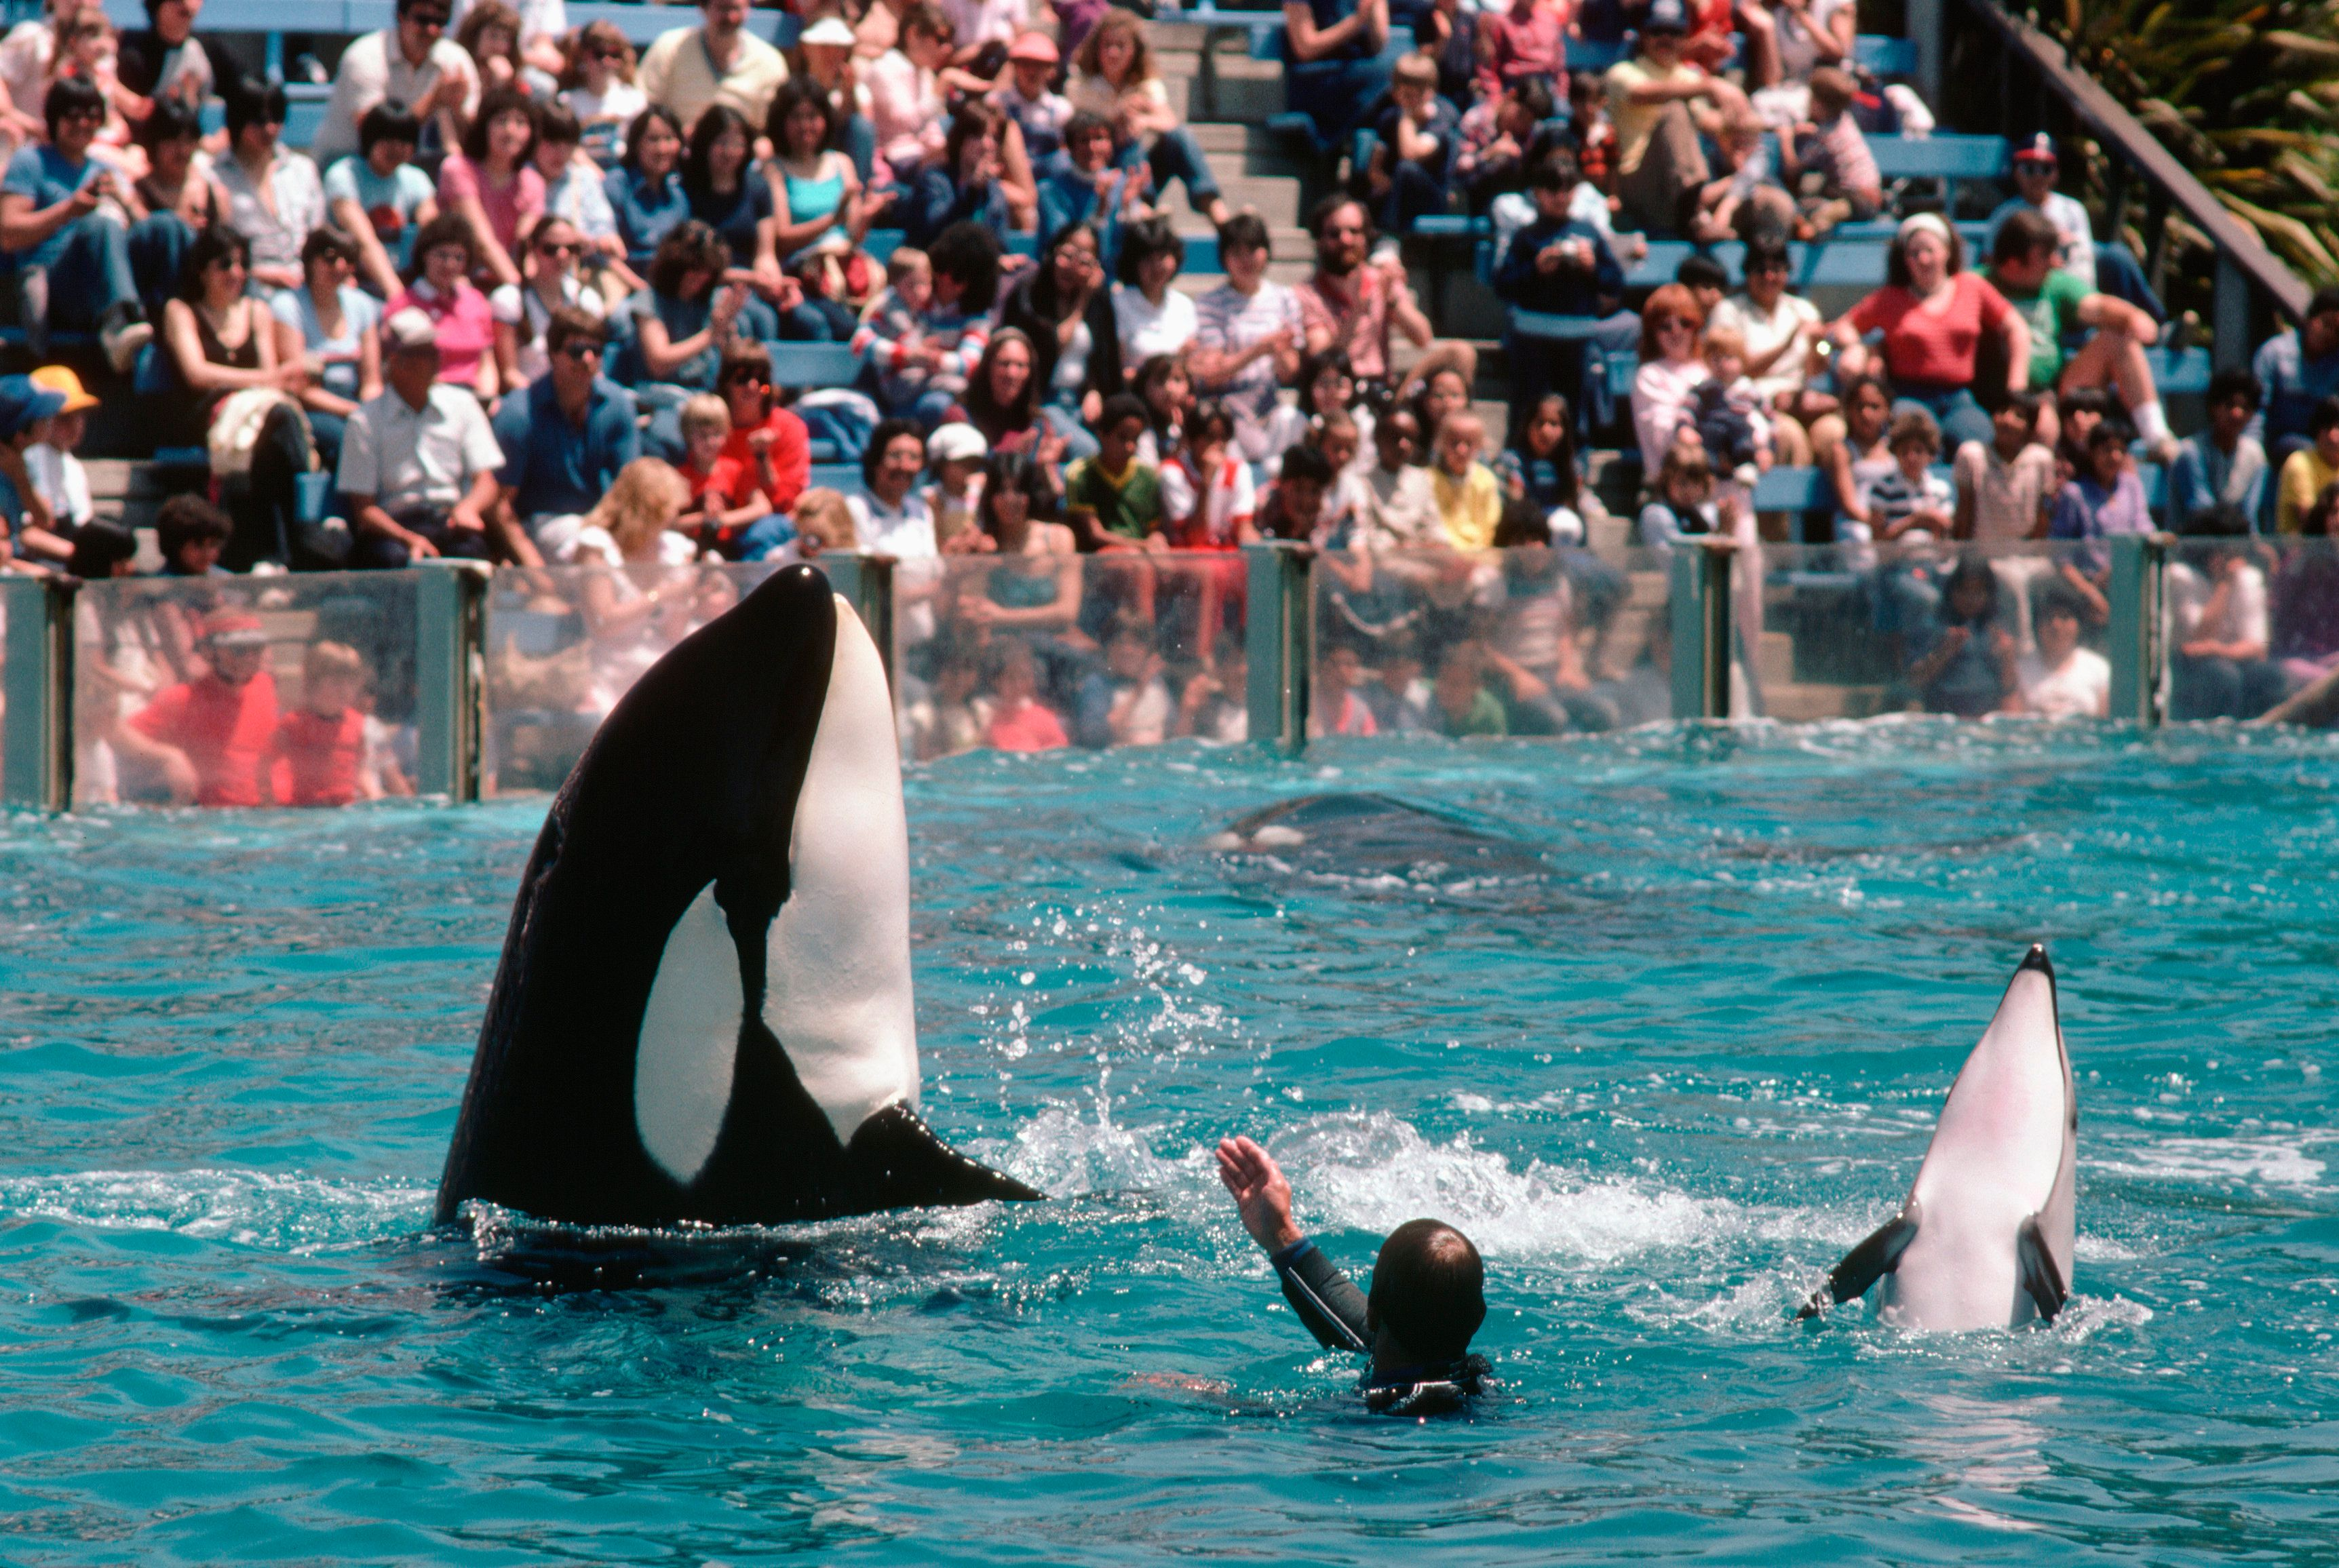 Orca whales perform tricks at San Diego's SeaWorld.